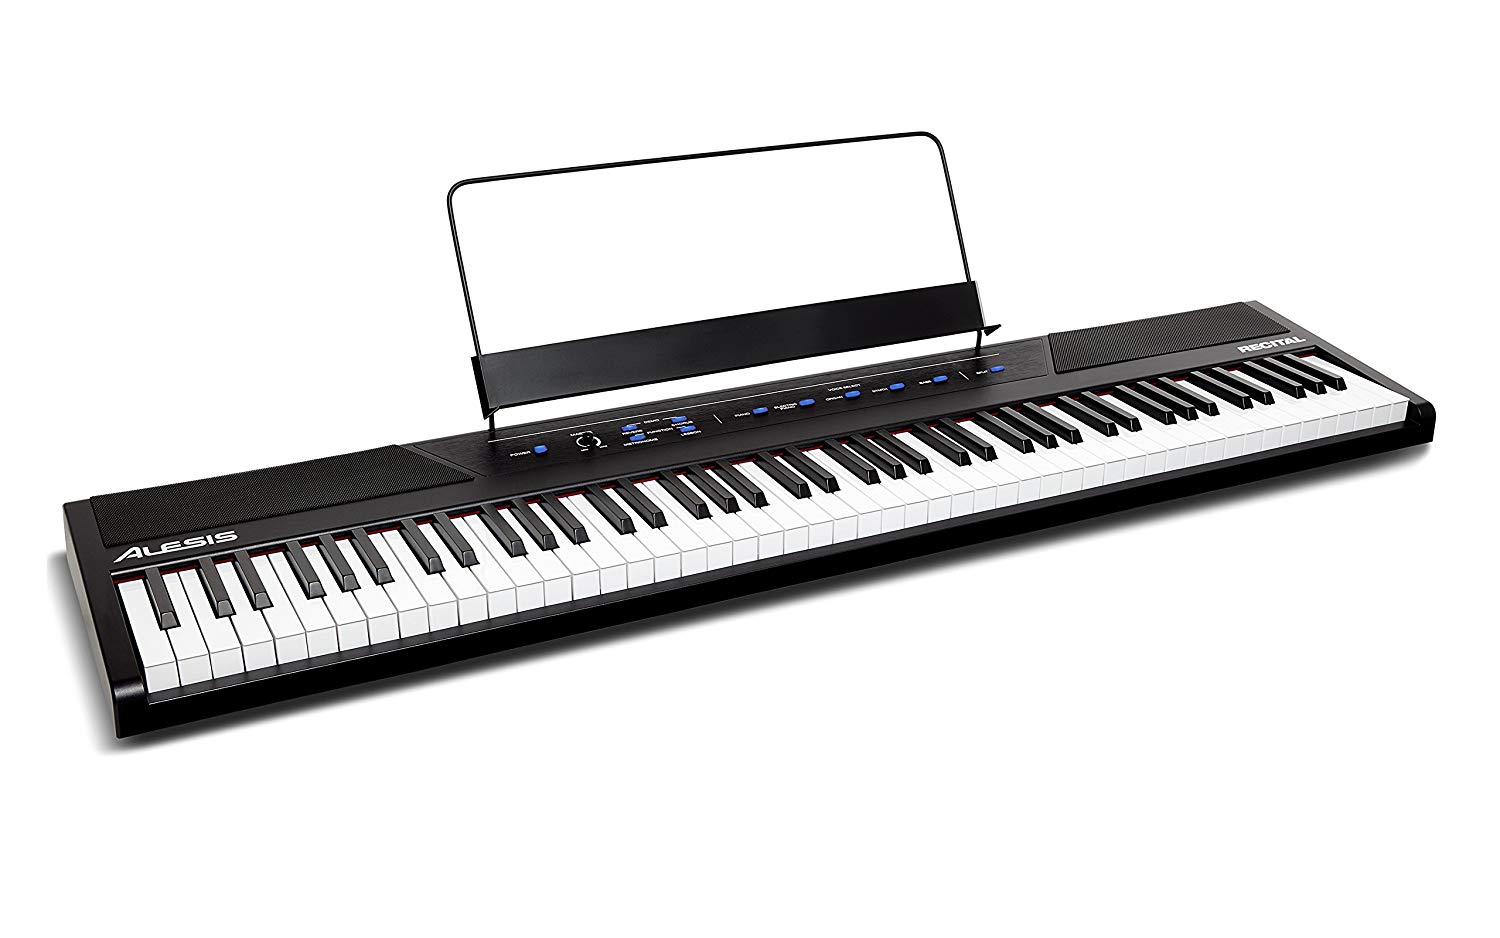 Alesis Recital Digital Piano Review 2020